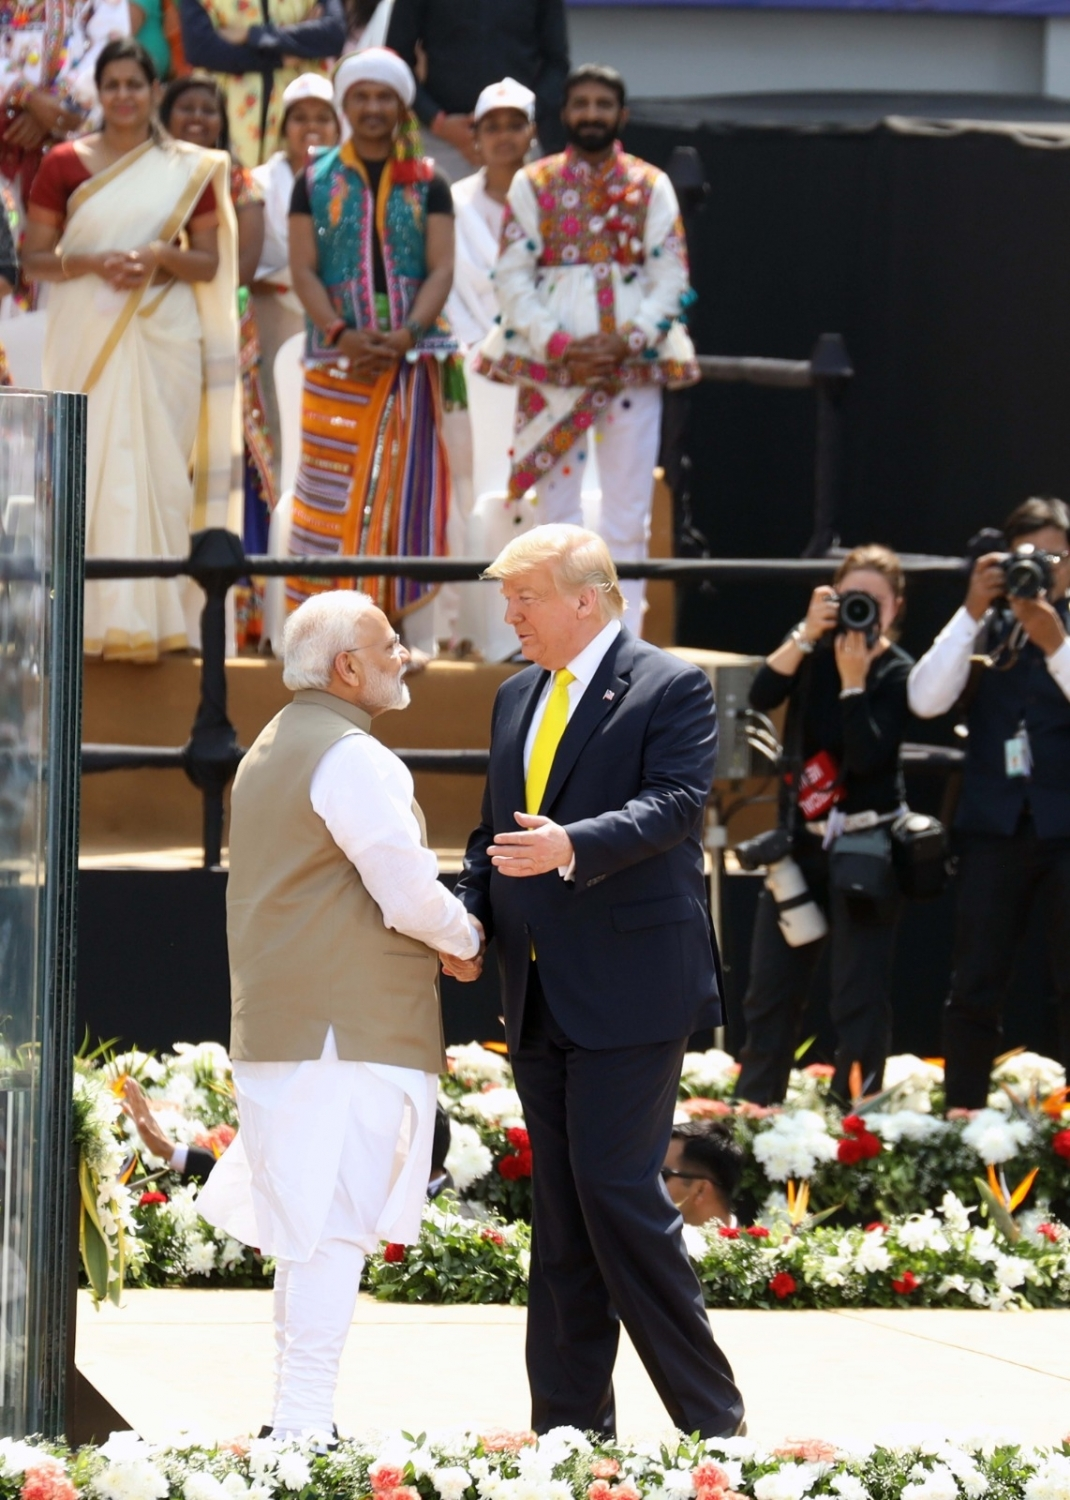 Ahmedabad: Prime Minister Narendra Modi and US President Donald Trump during 'Namste Trump' mega event at Motera cricket stadium in Ahmedabad on Feb 24, 2020. (Photo: IANS)